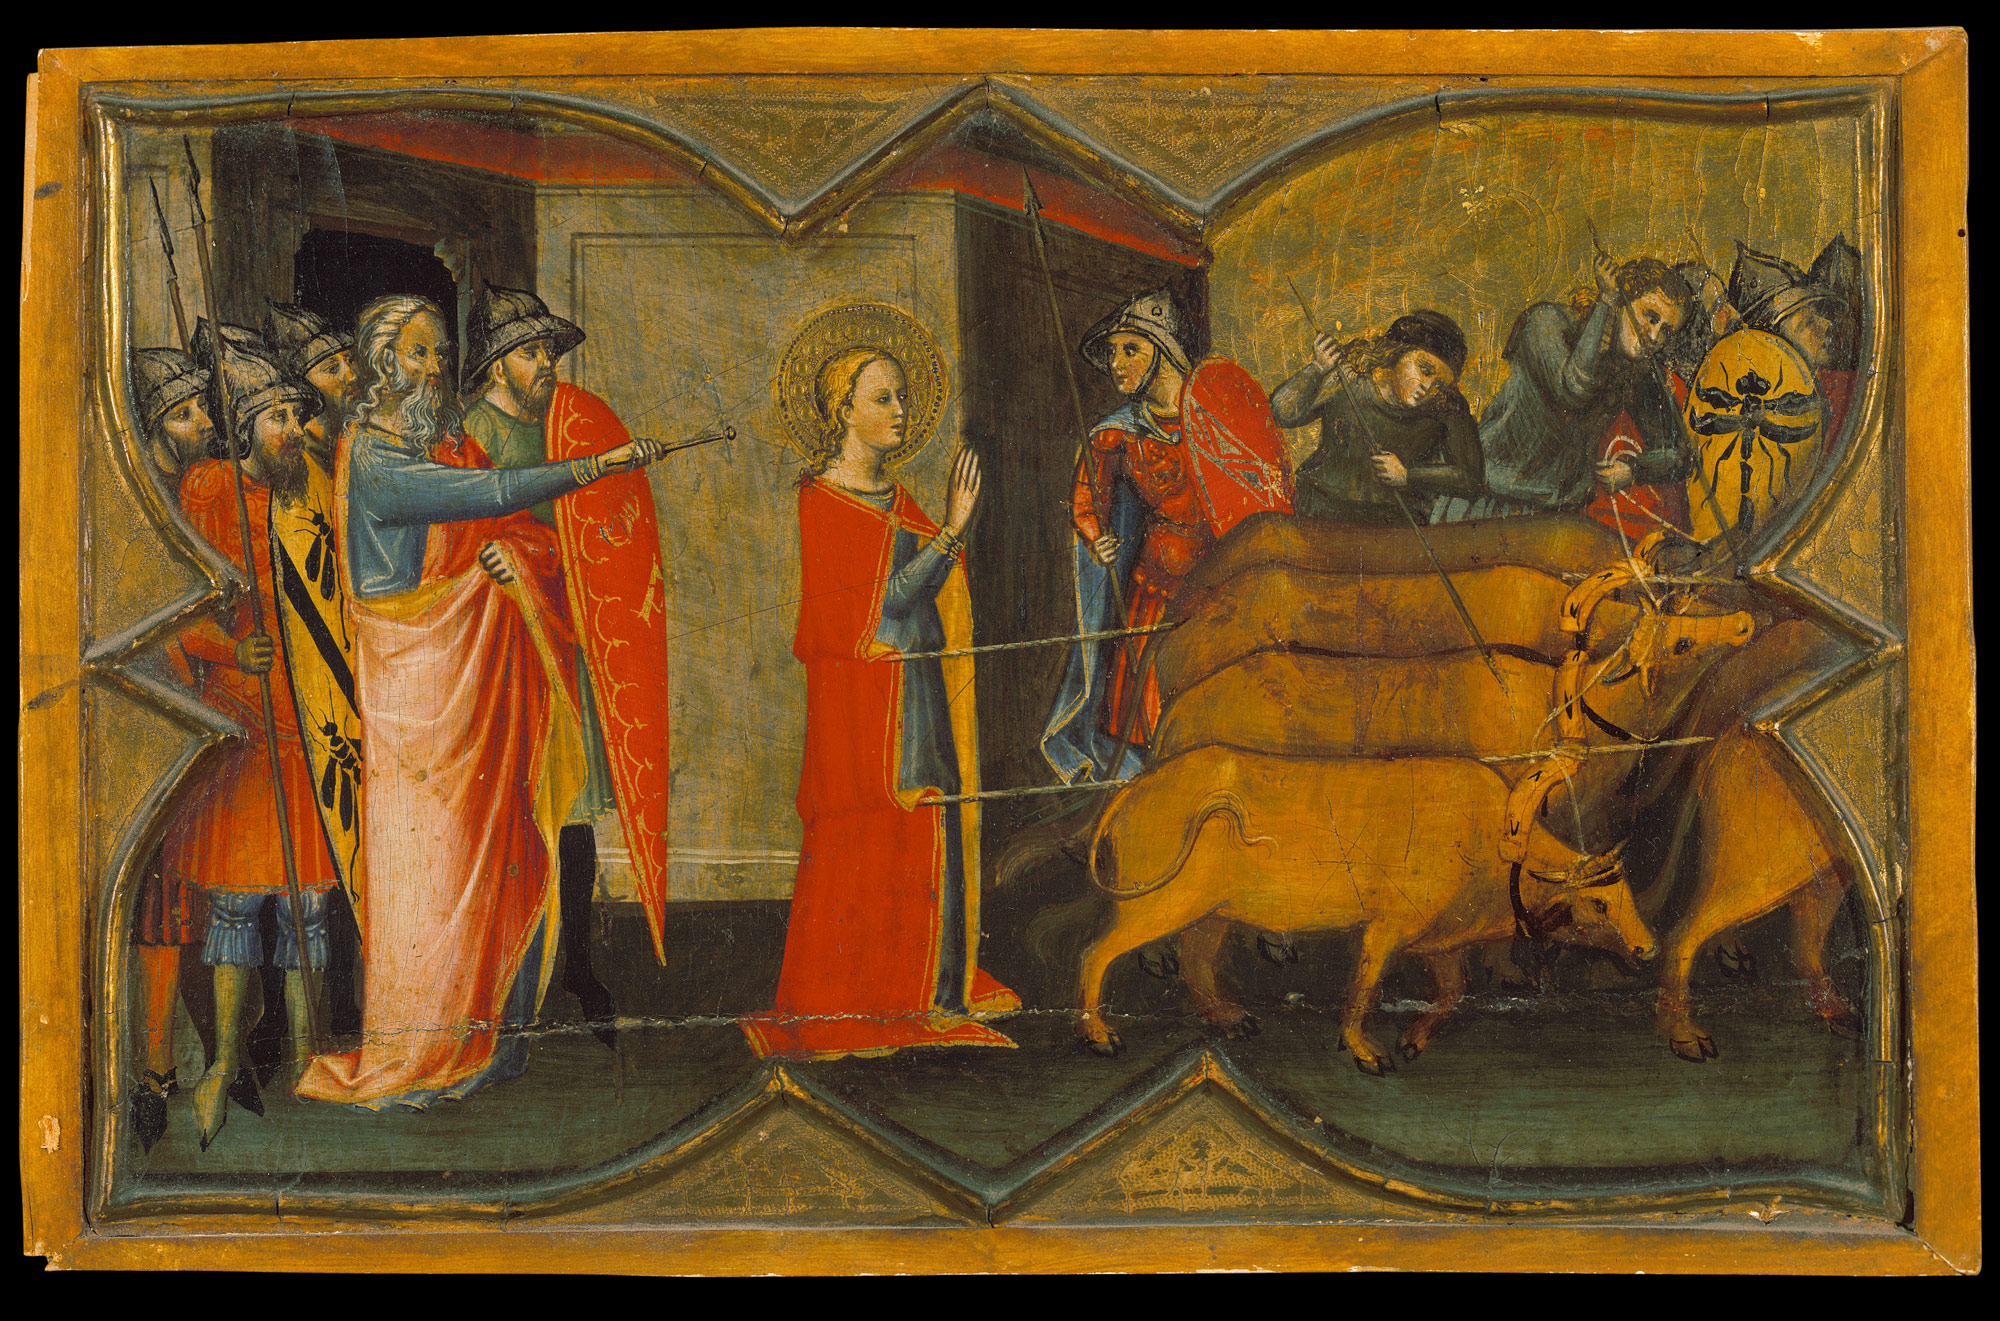 Saint Lucy and Her Mother at the Shrine of Saint Agatha; Saint Lucy Giving Alms; Saint Lucy before Paschasius; Saint Lucy Resisting Efforts to Move Her